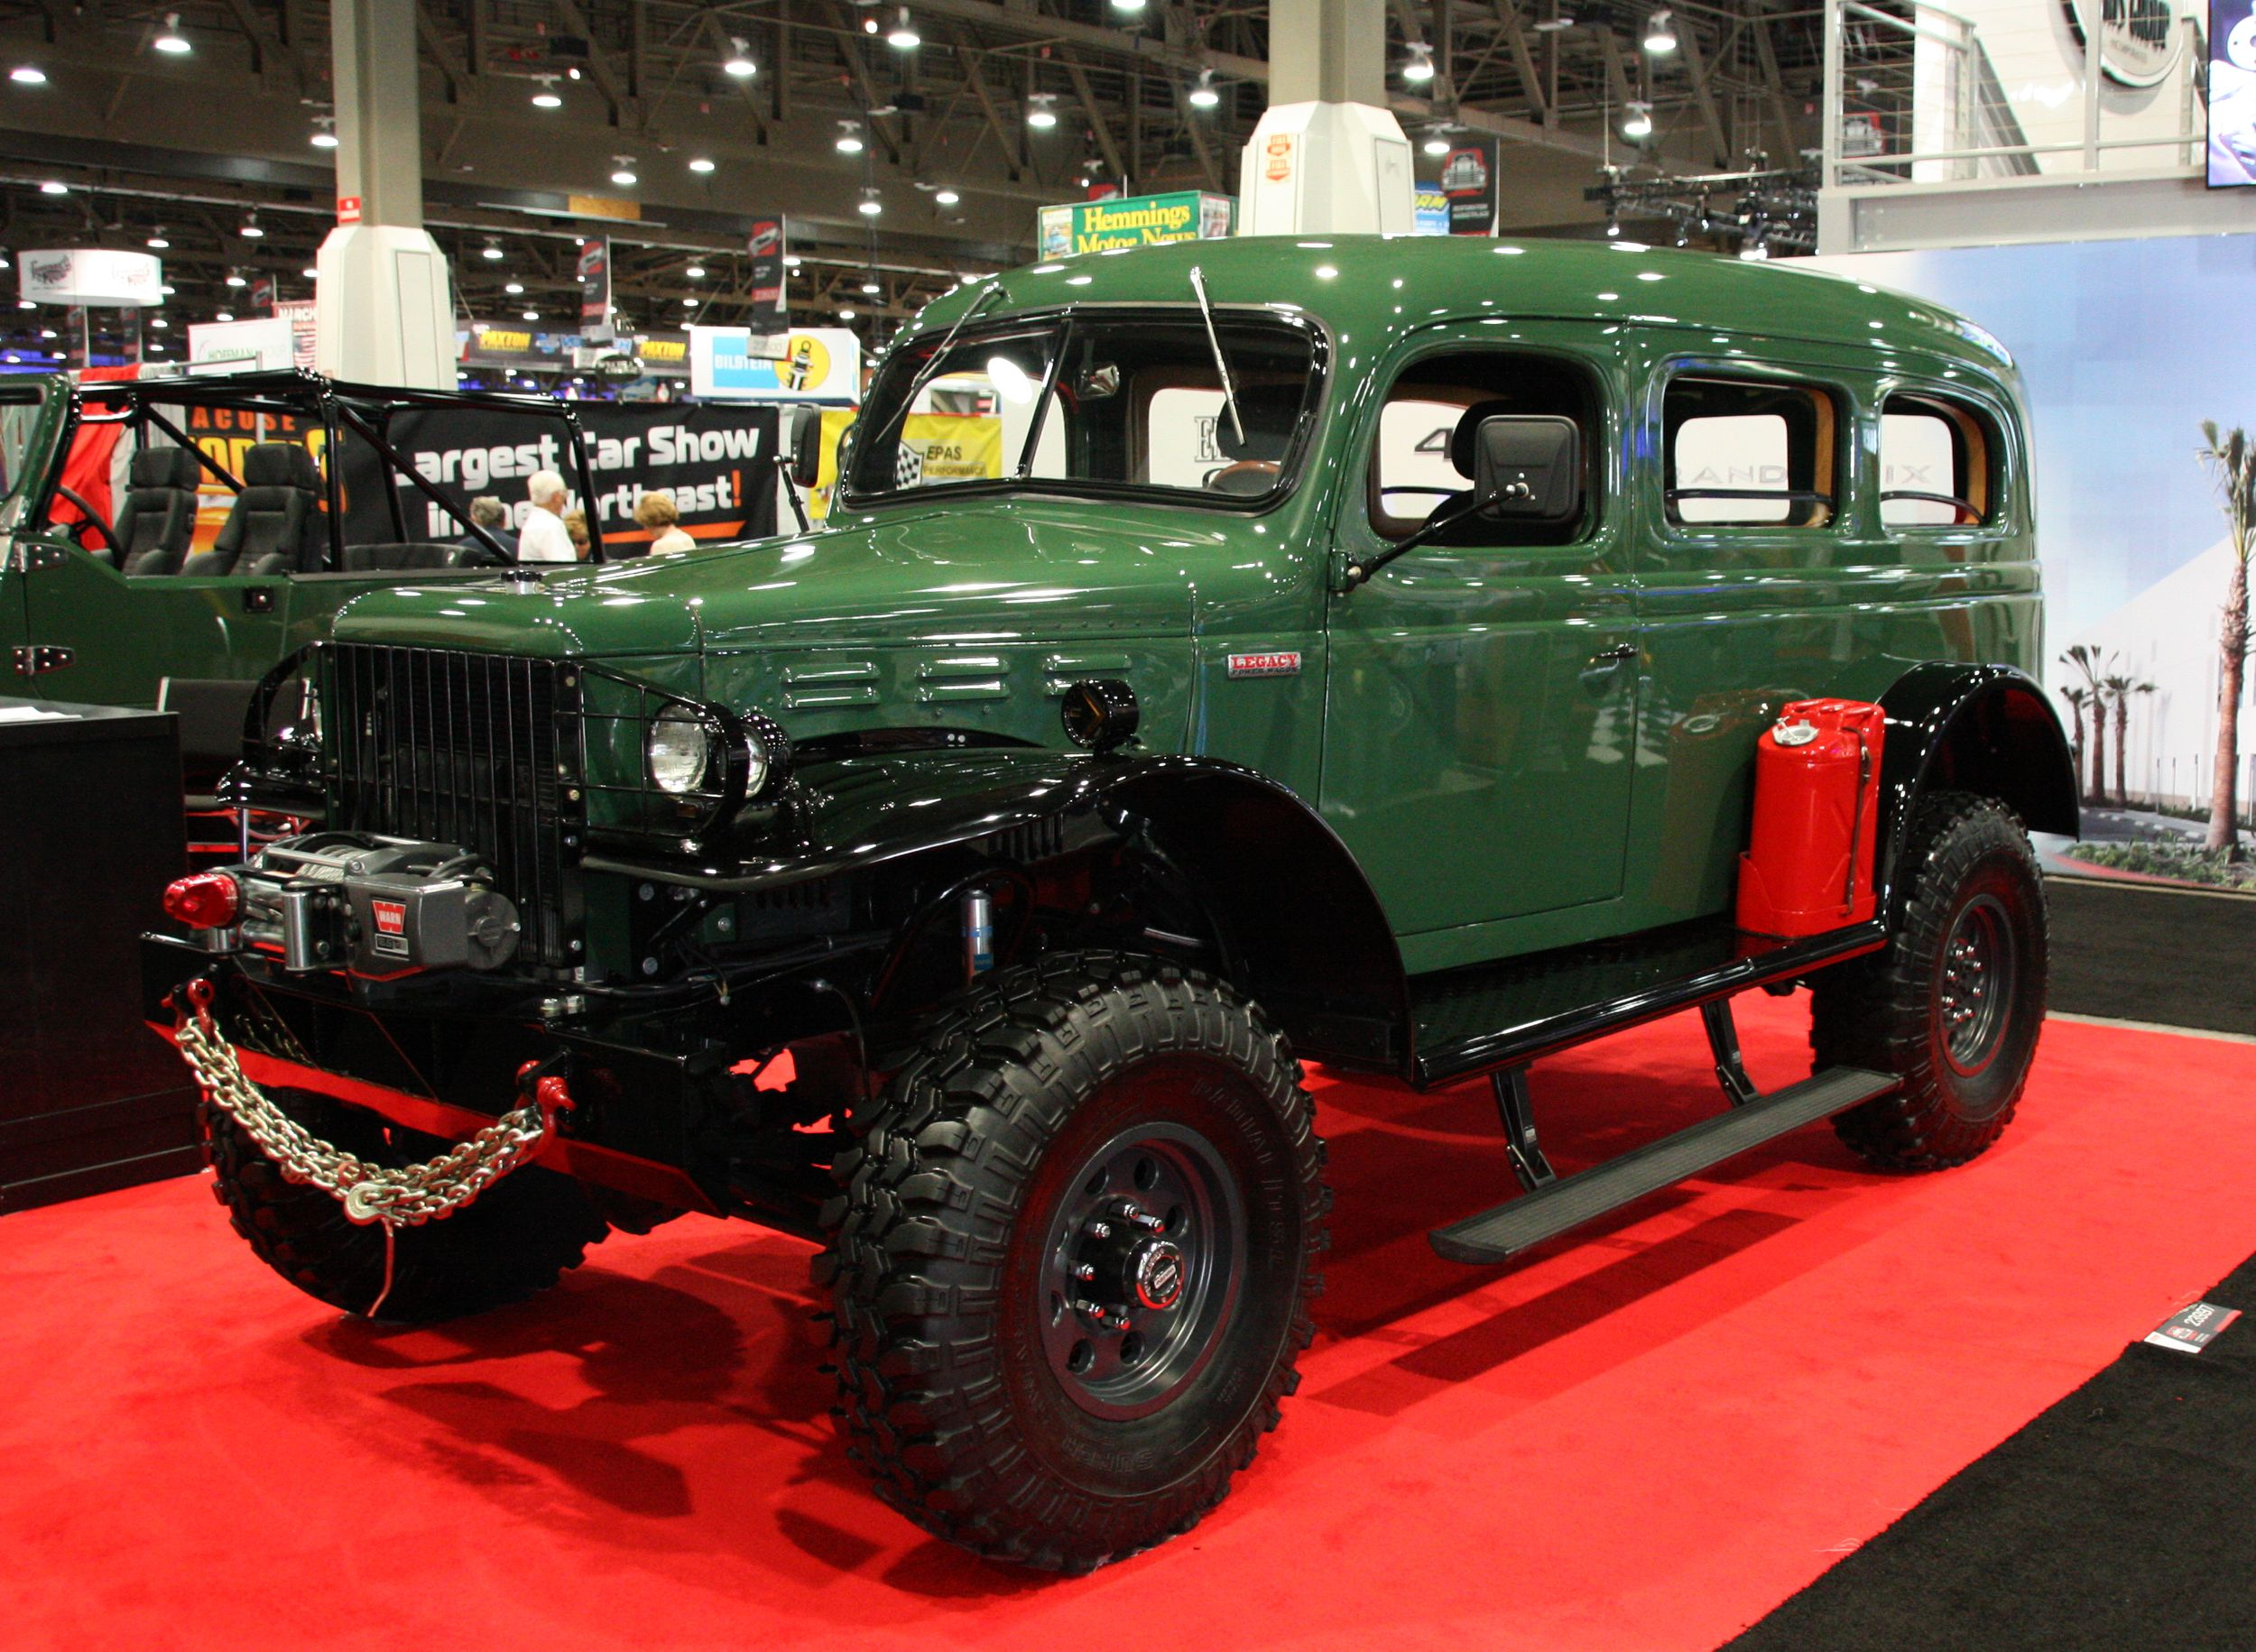 Miraculous 1954 Dodge M 37 Power Wagon Used Classic Dodge For Sale New Model Wiring Cloud Ymoonsalvmohammedshrineorg